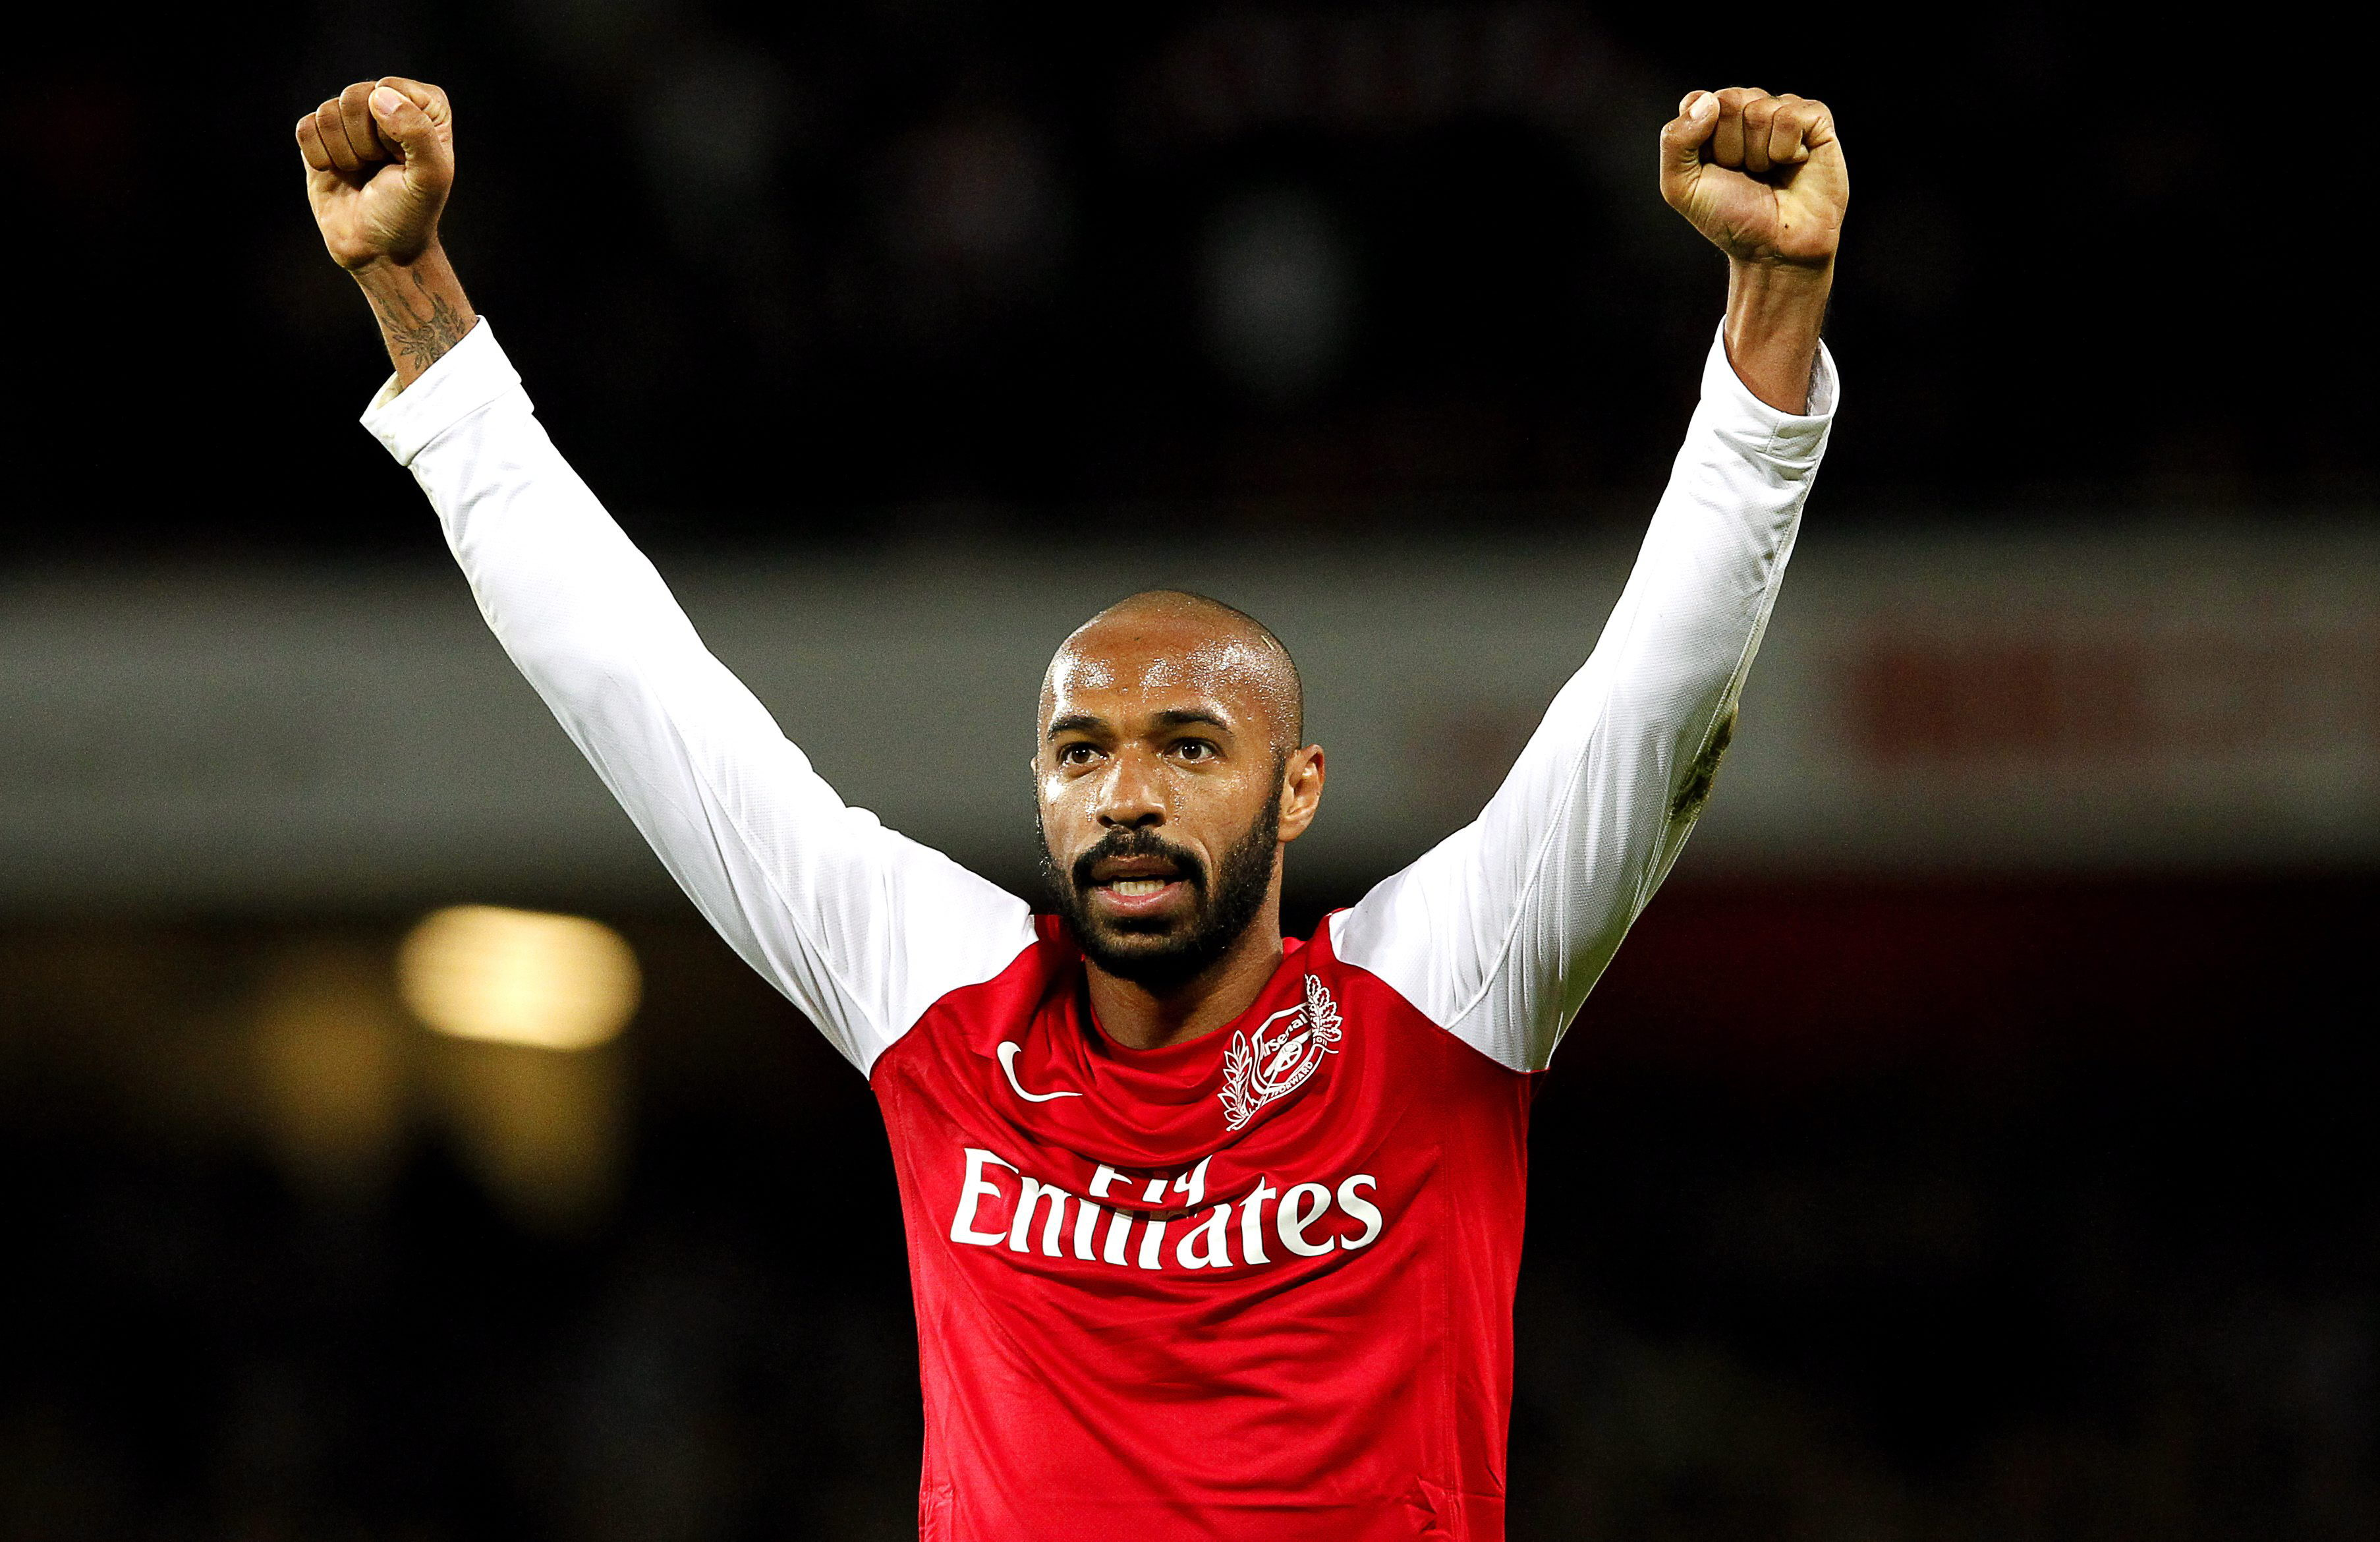 Thierry Henry Photos & Wallpaper